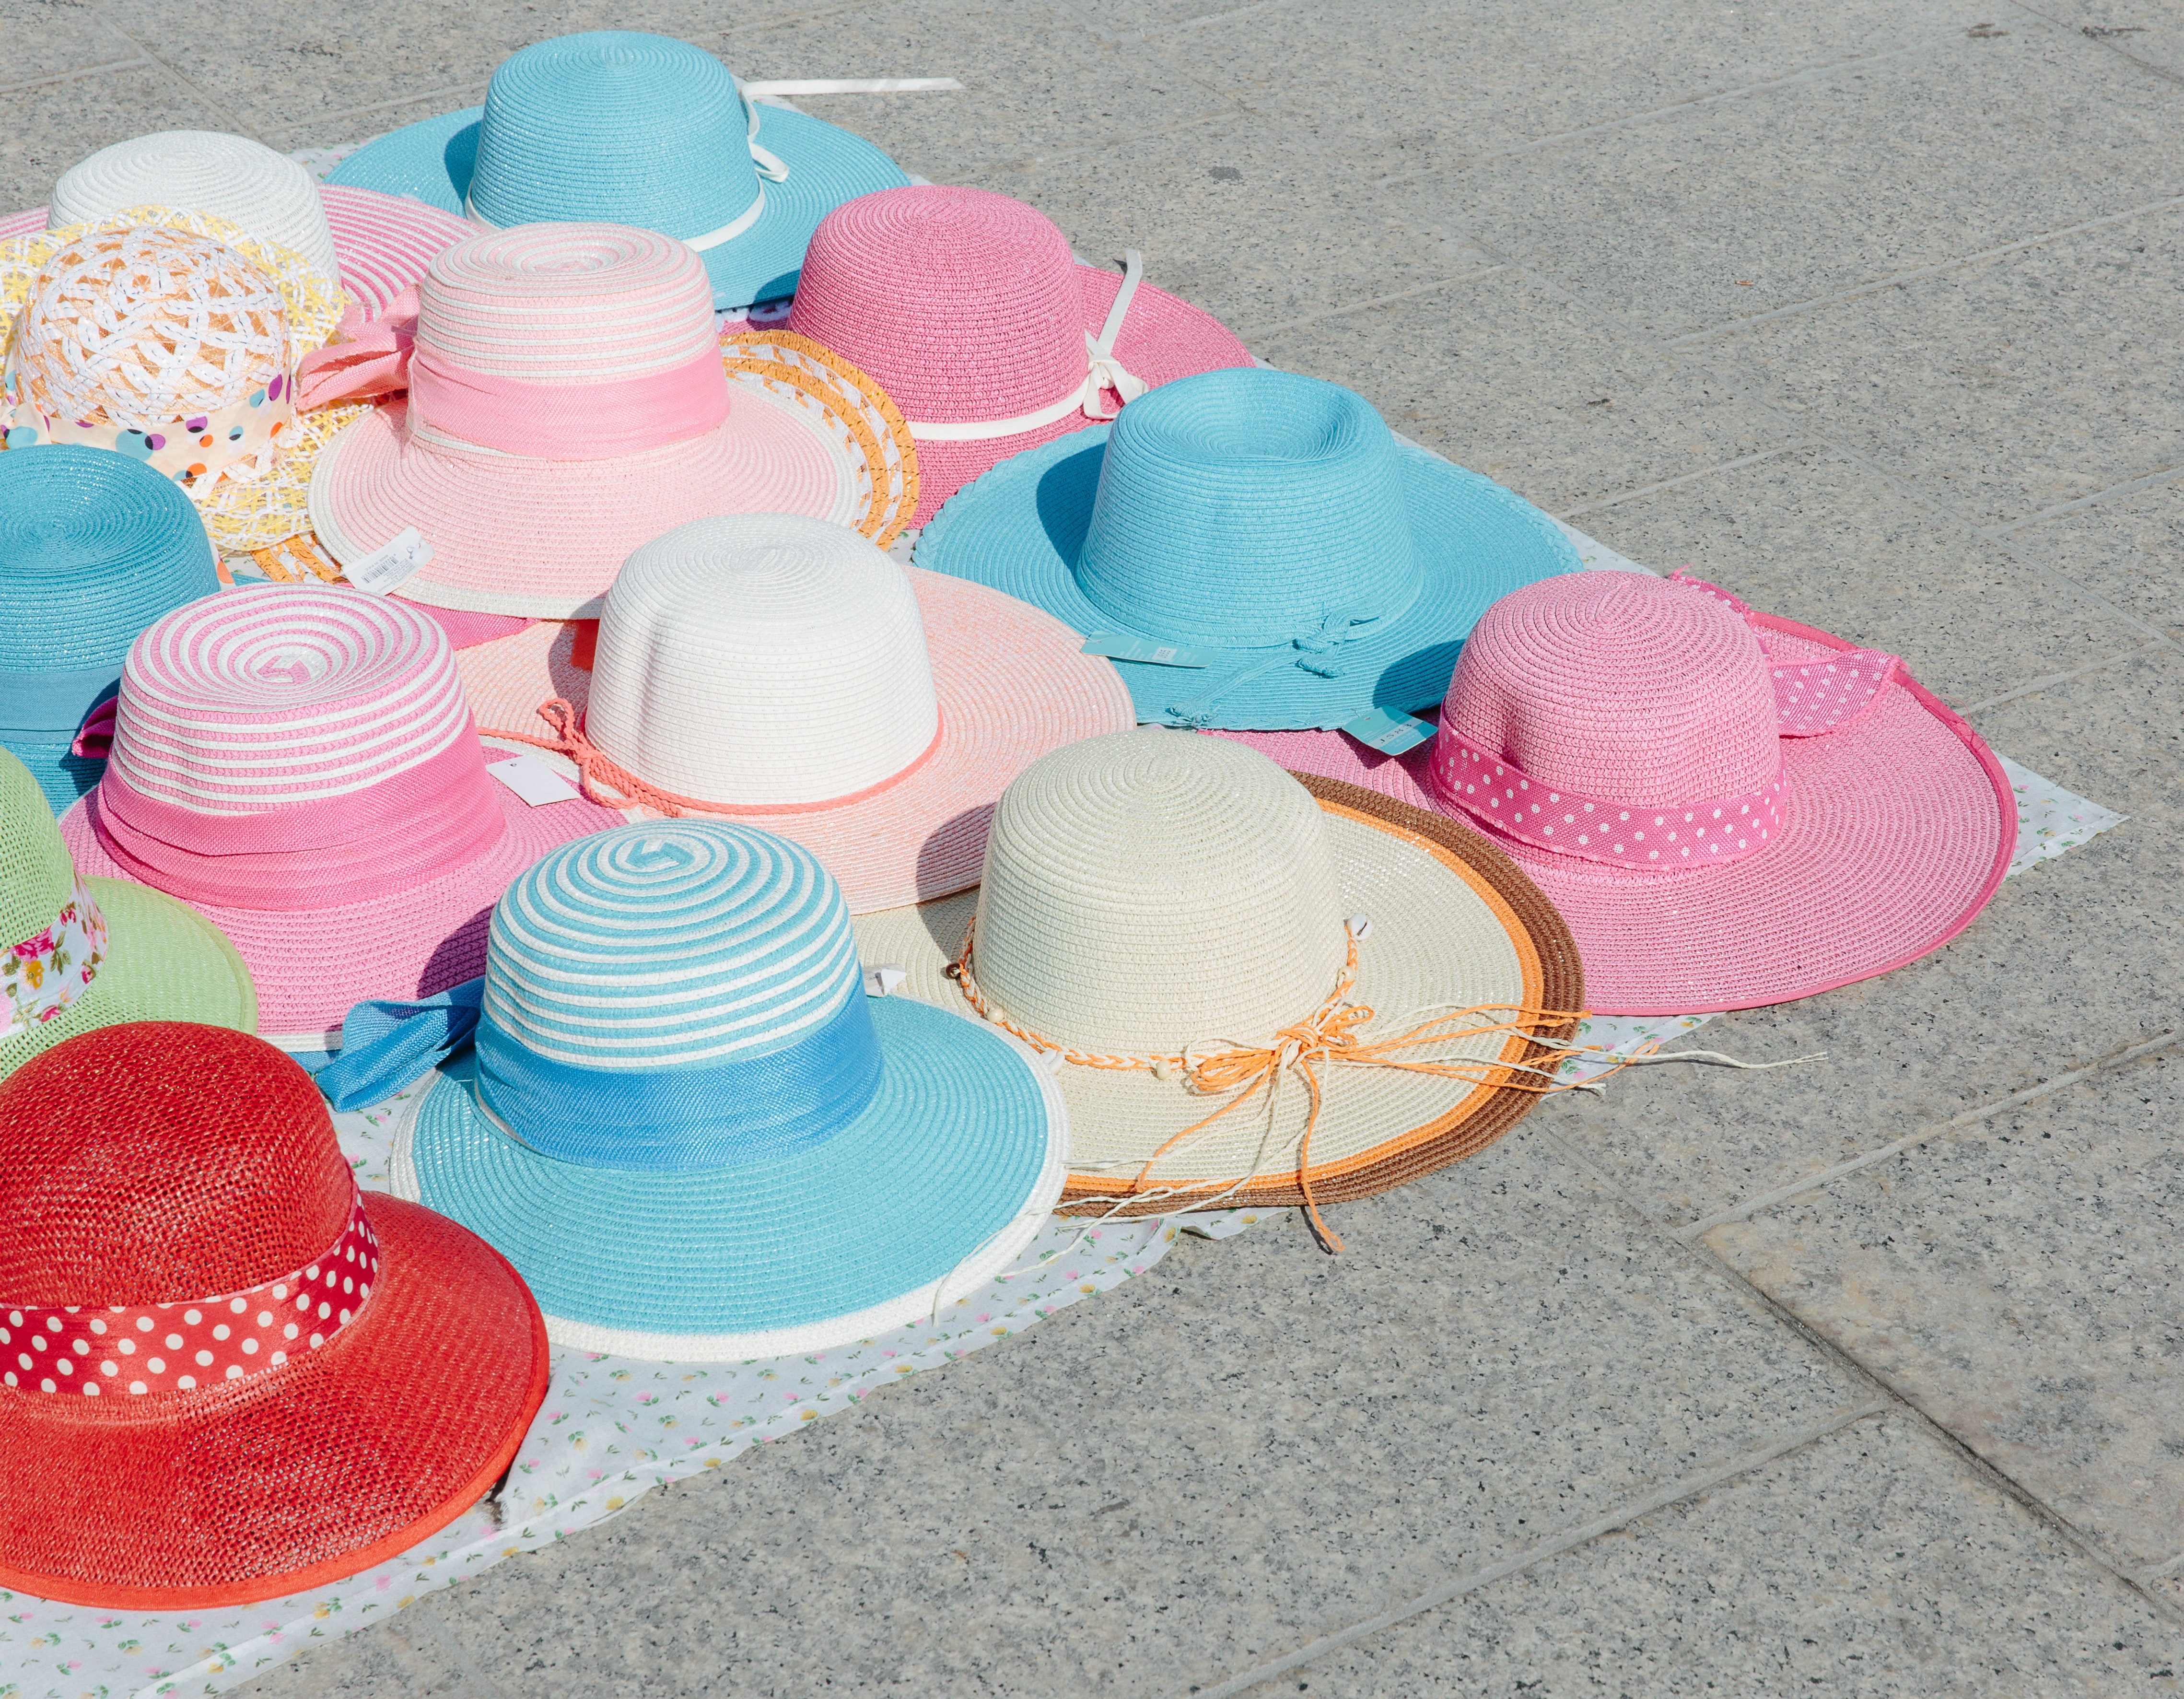 Hats for sale in Sardinia